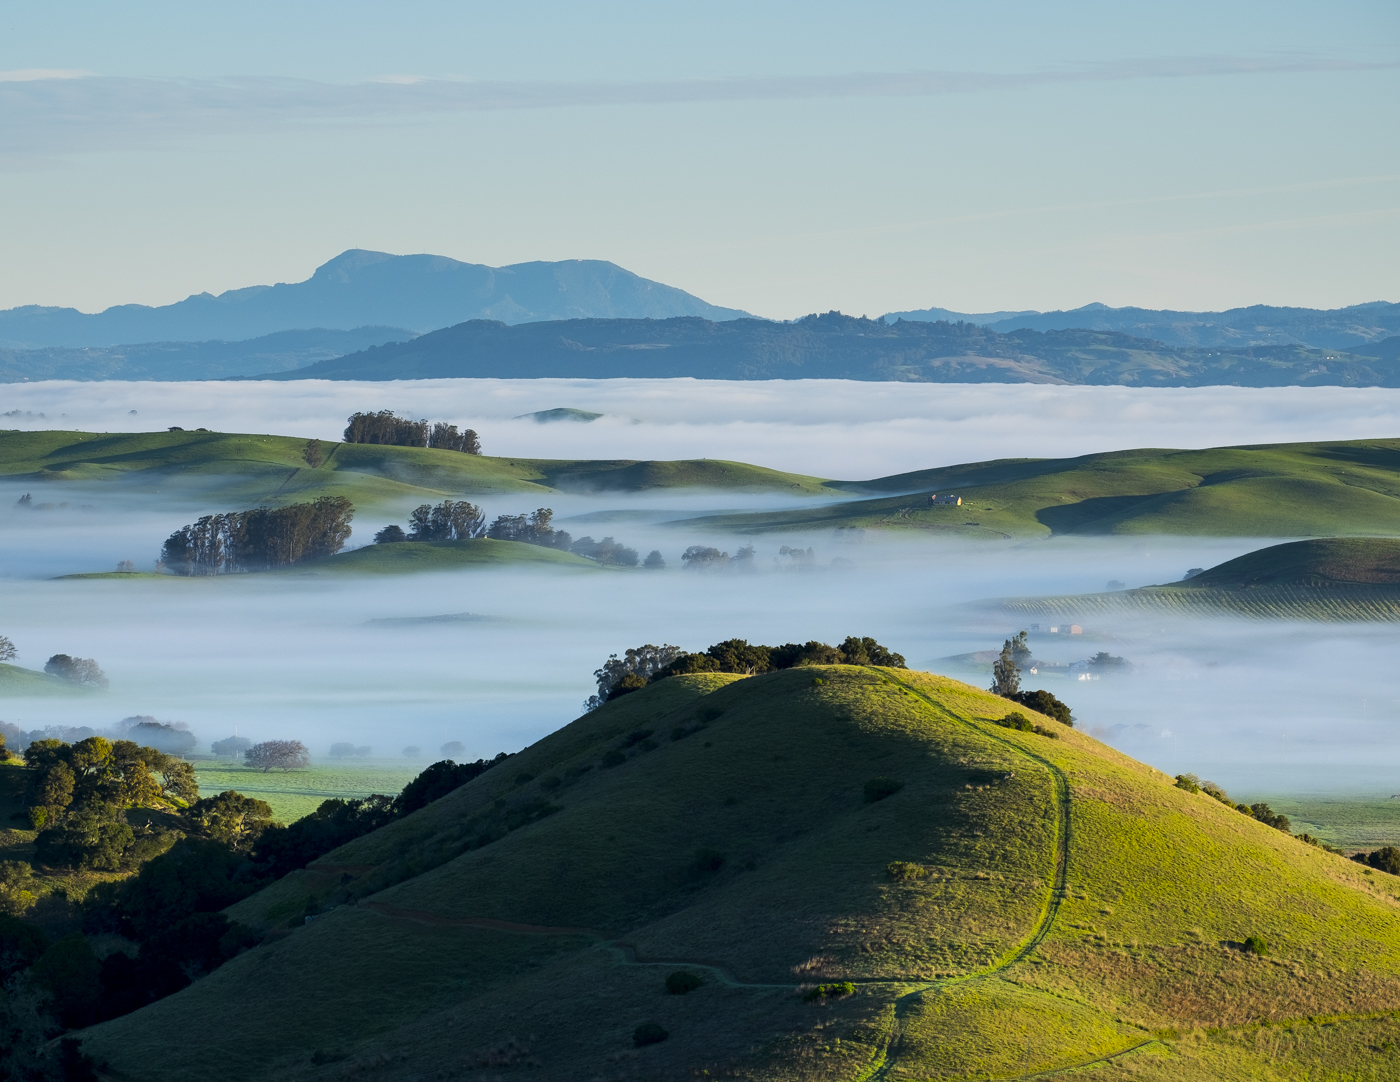 Hills of Northern California